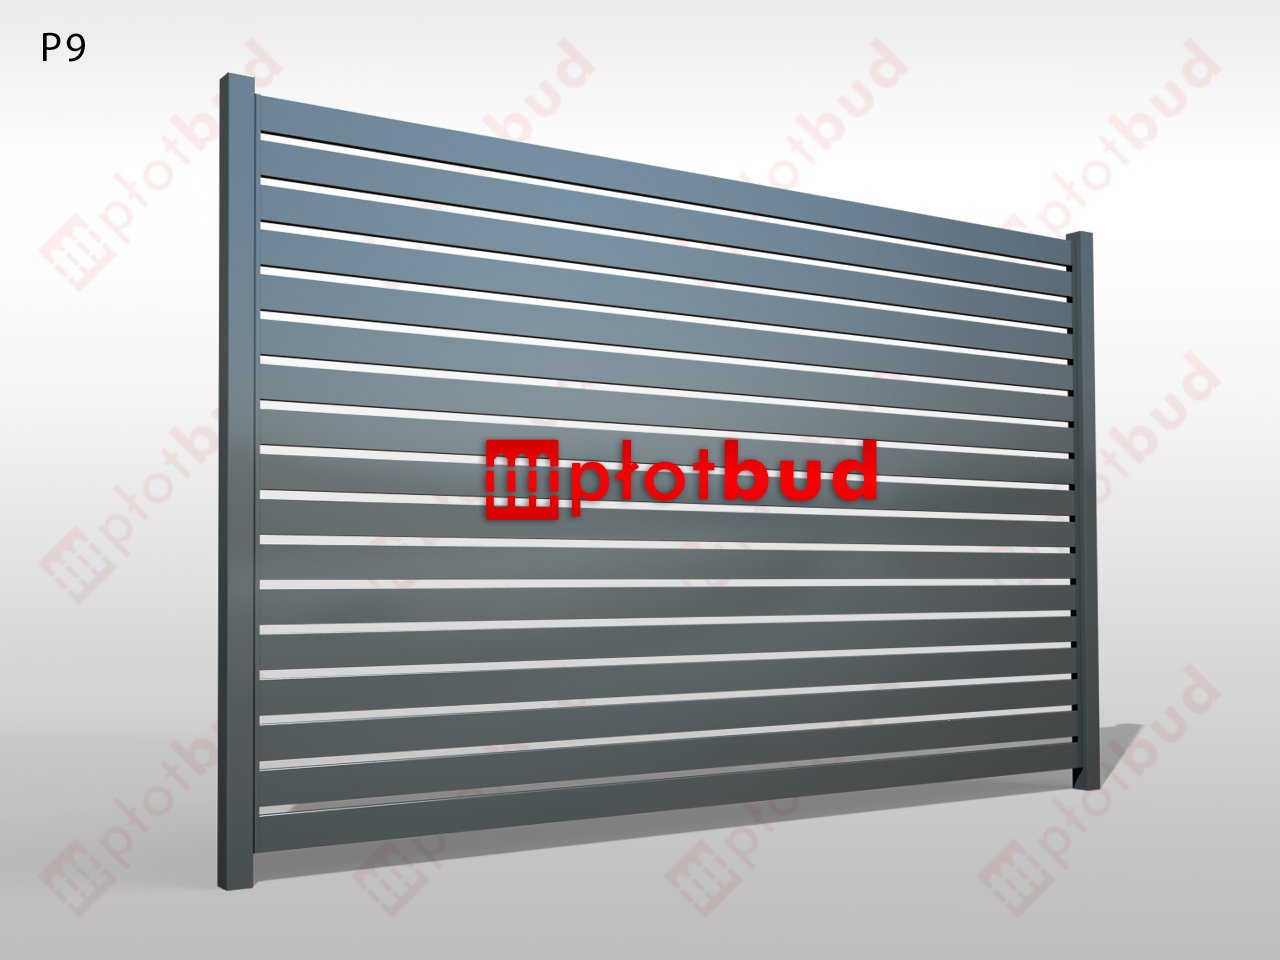 Panel palisadowy aluminiowy - Typ P9